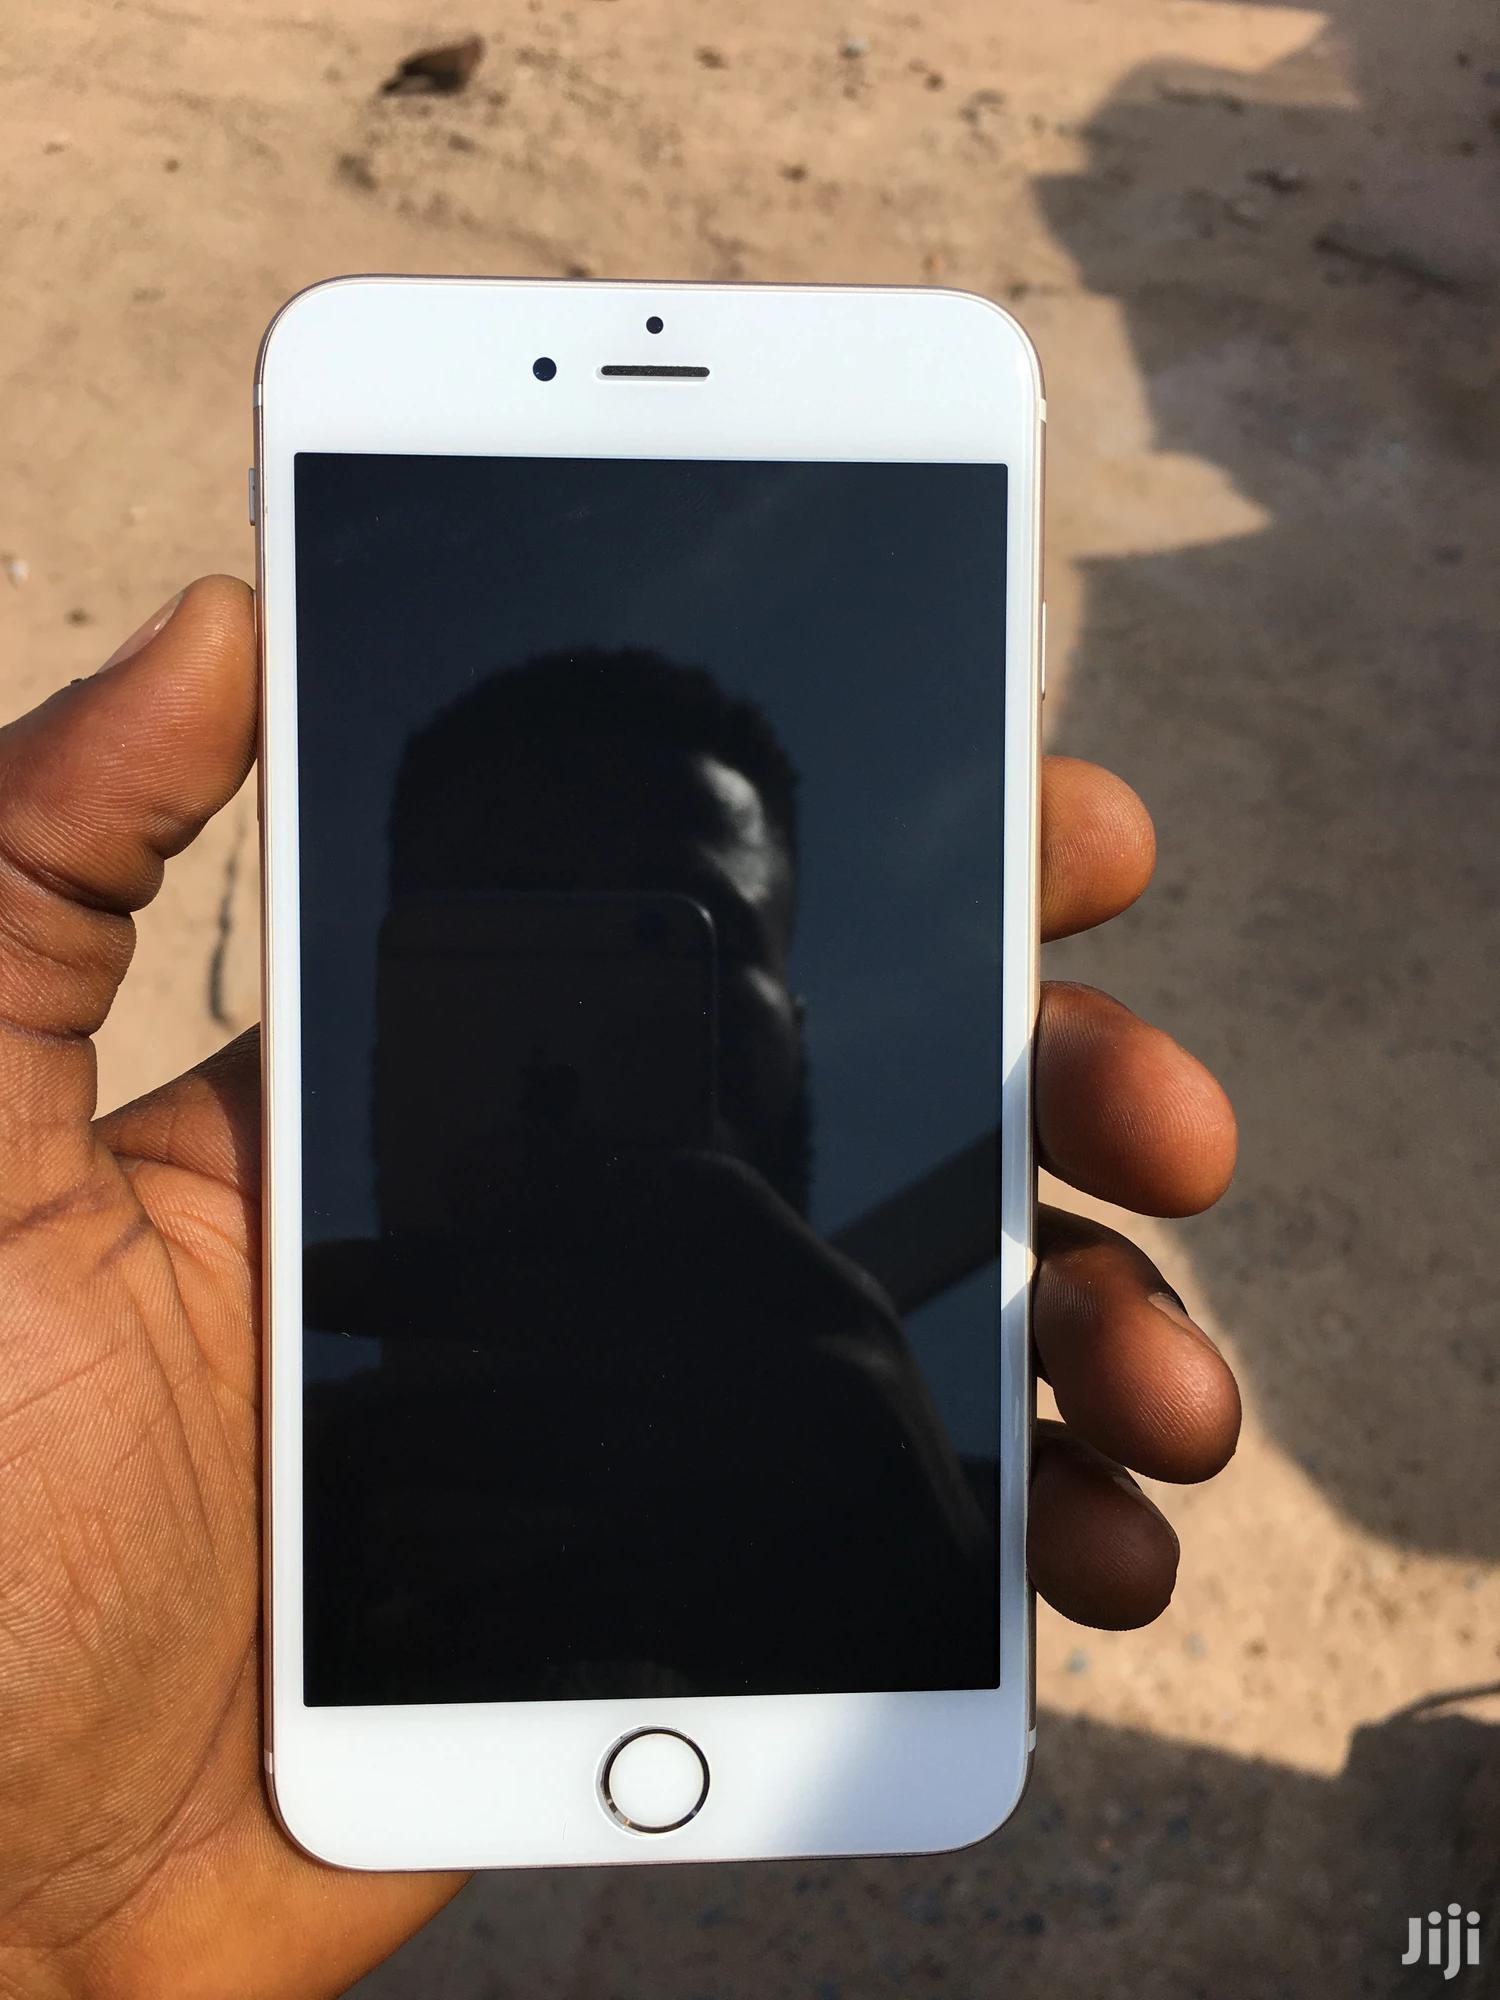 Apple iPhone 6s Plus 64 GB Silver | Mobile Phones for sale in Dansoman, Greater Accra, Ghana